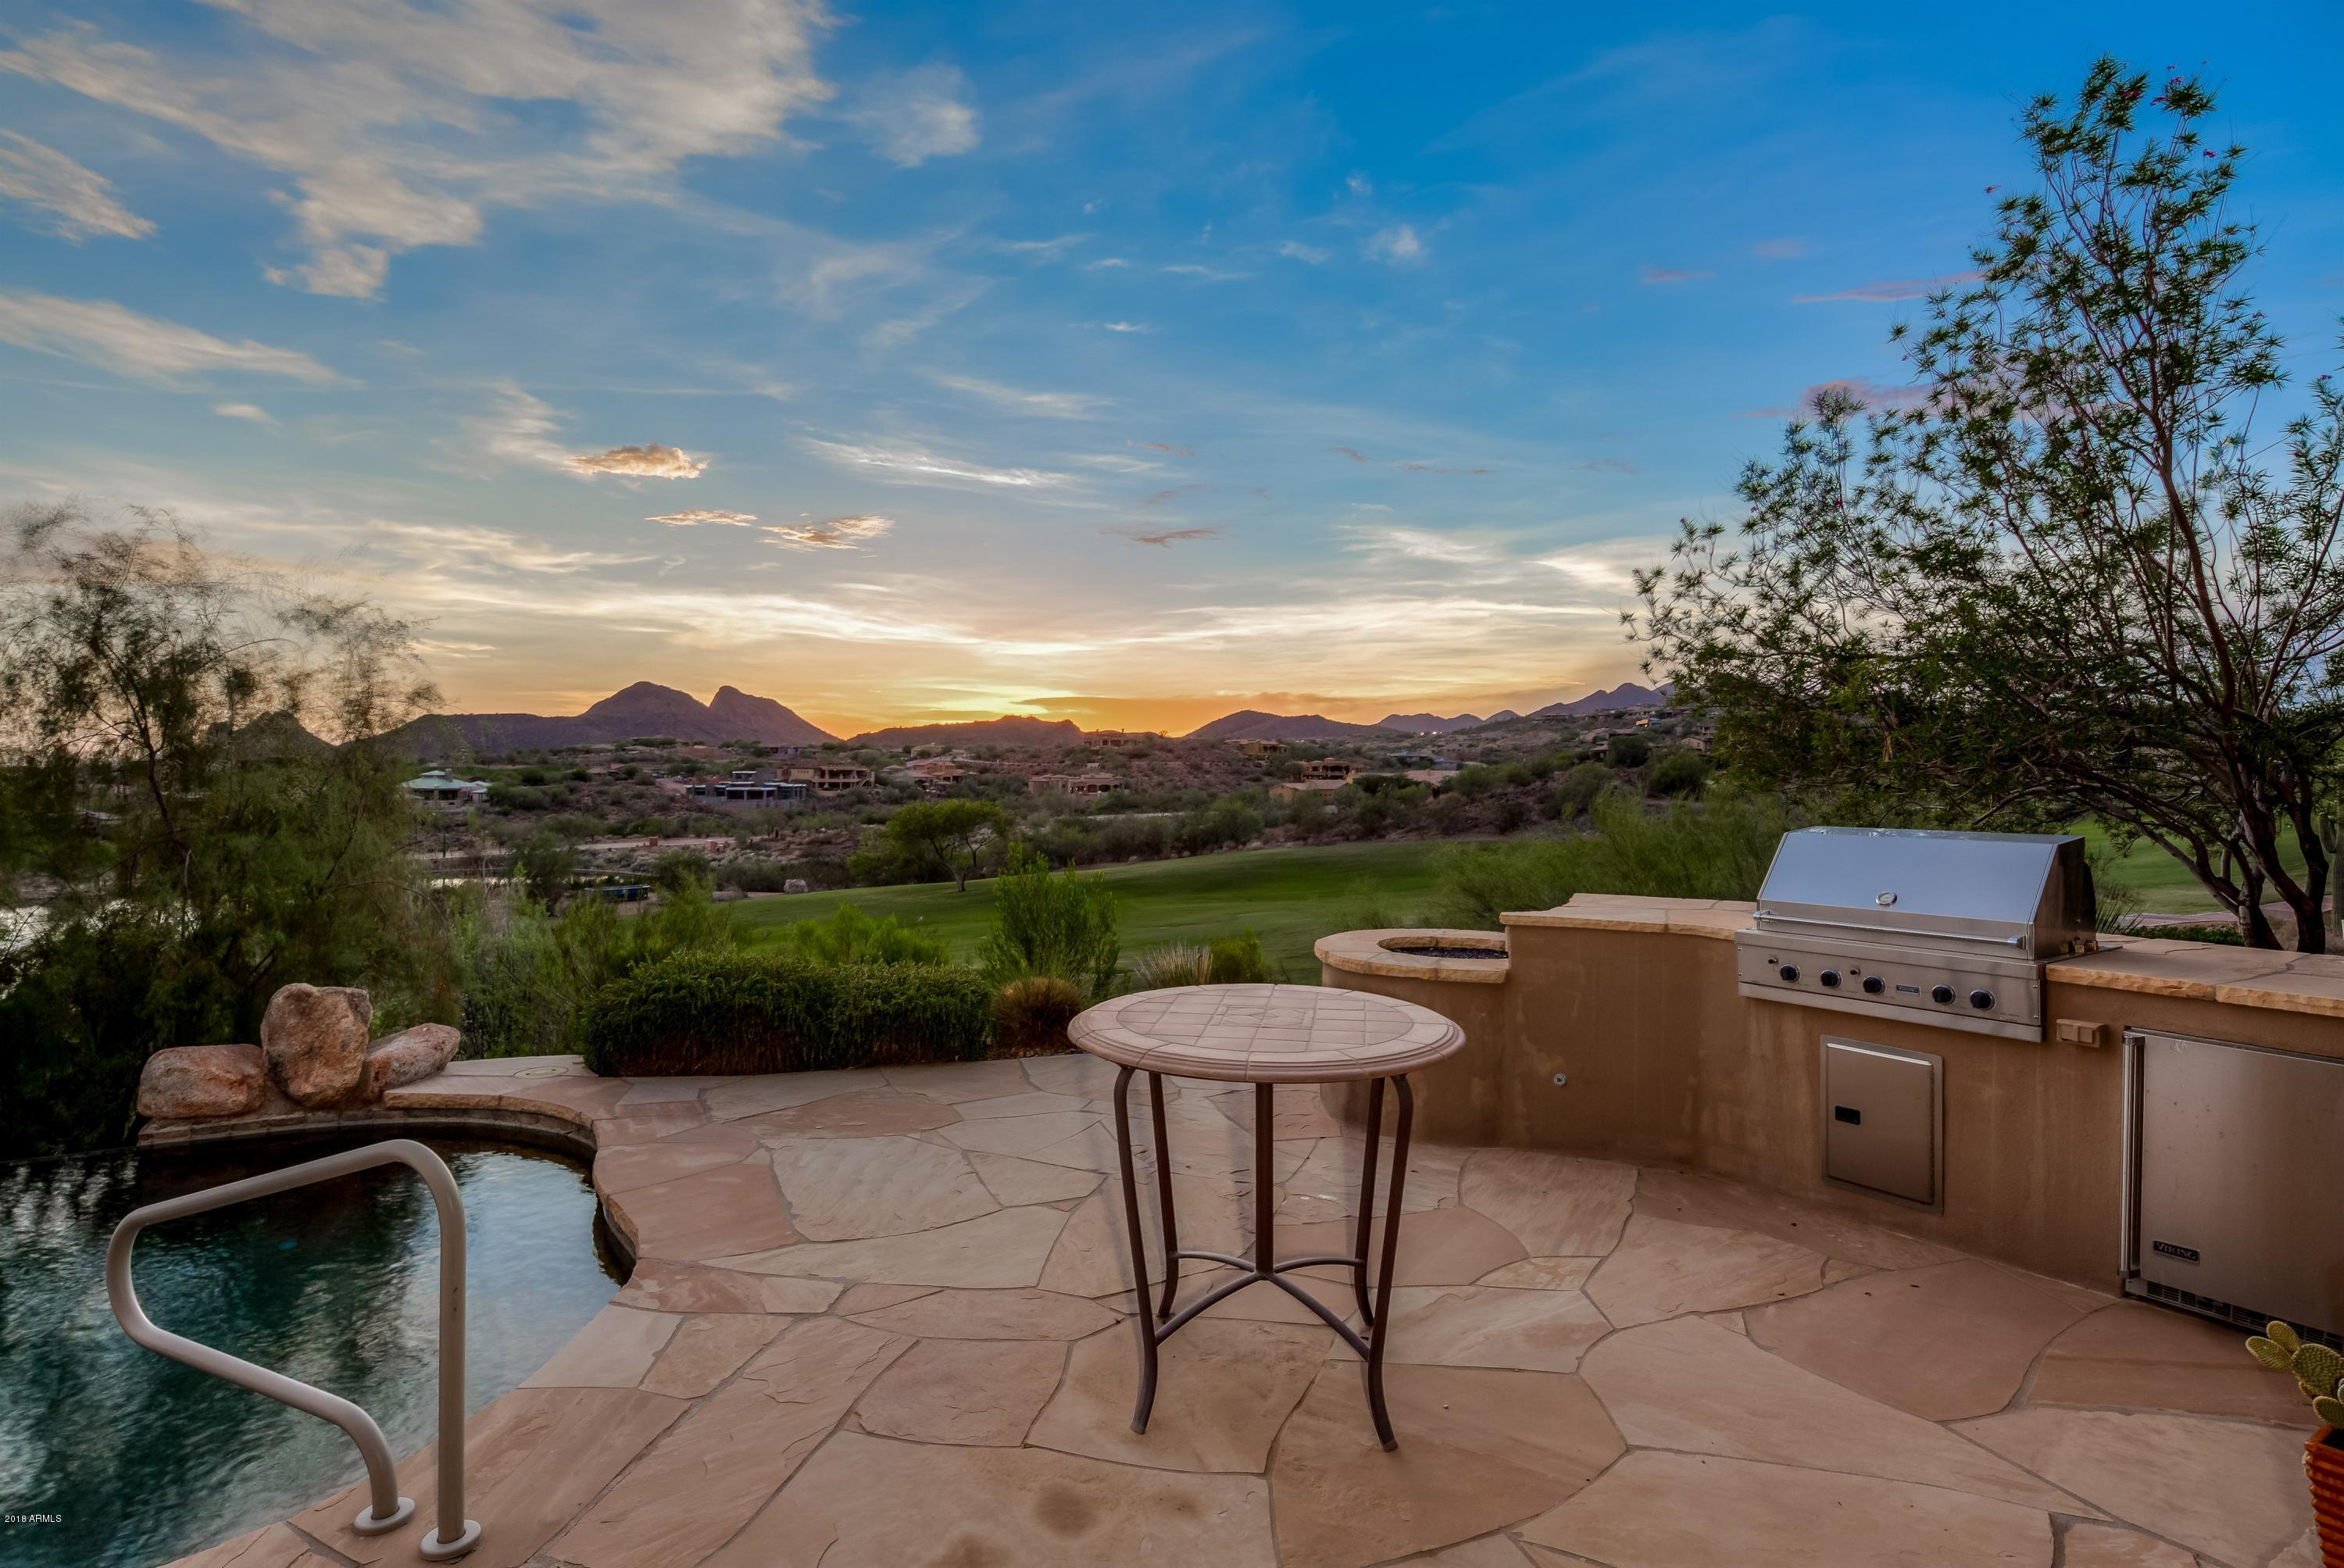 MLS 5798392 9108 N Shadow Ridge Trail --, Fountain Hills, AZ 85268 Fountain Hills AZ Four Bedroom